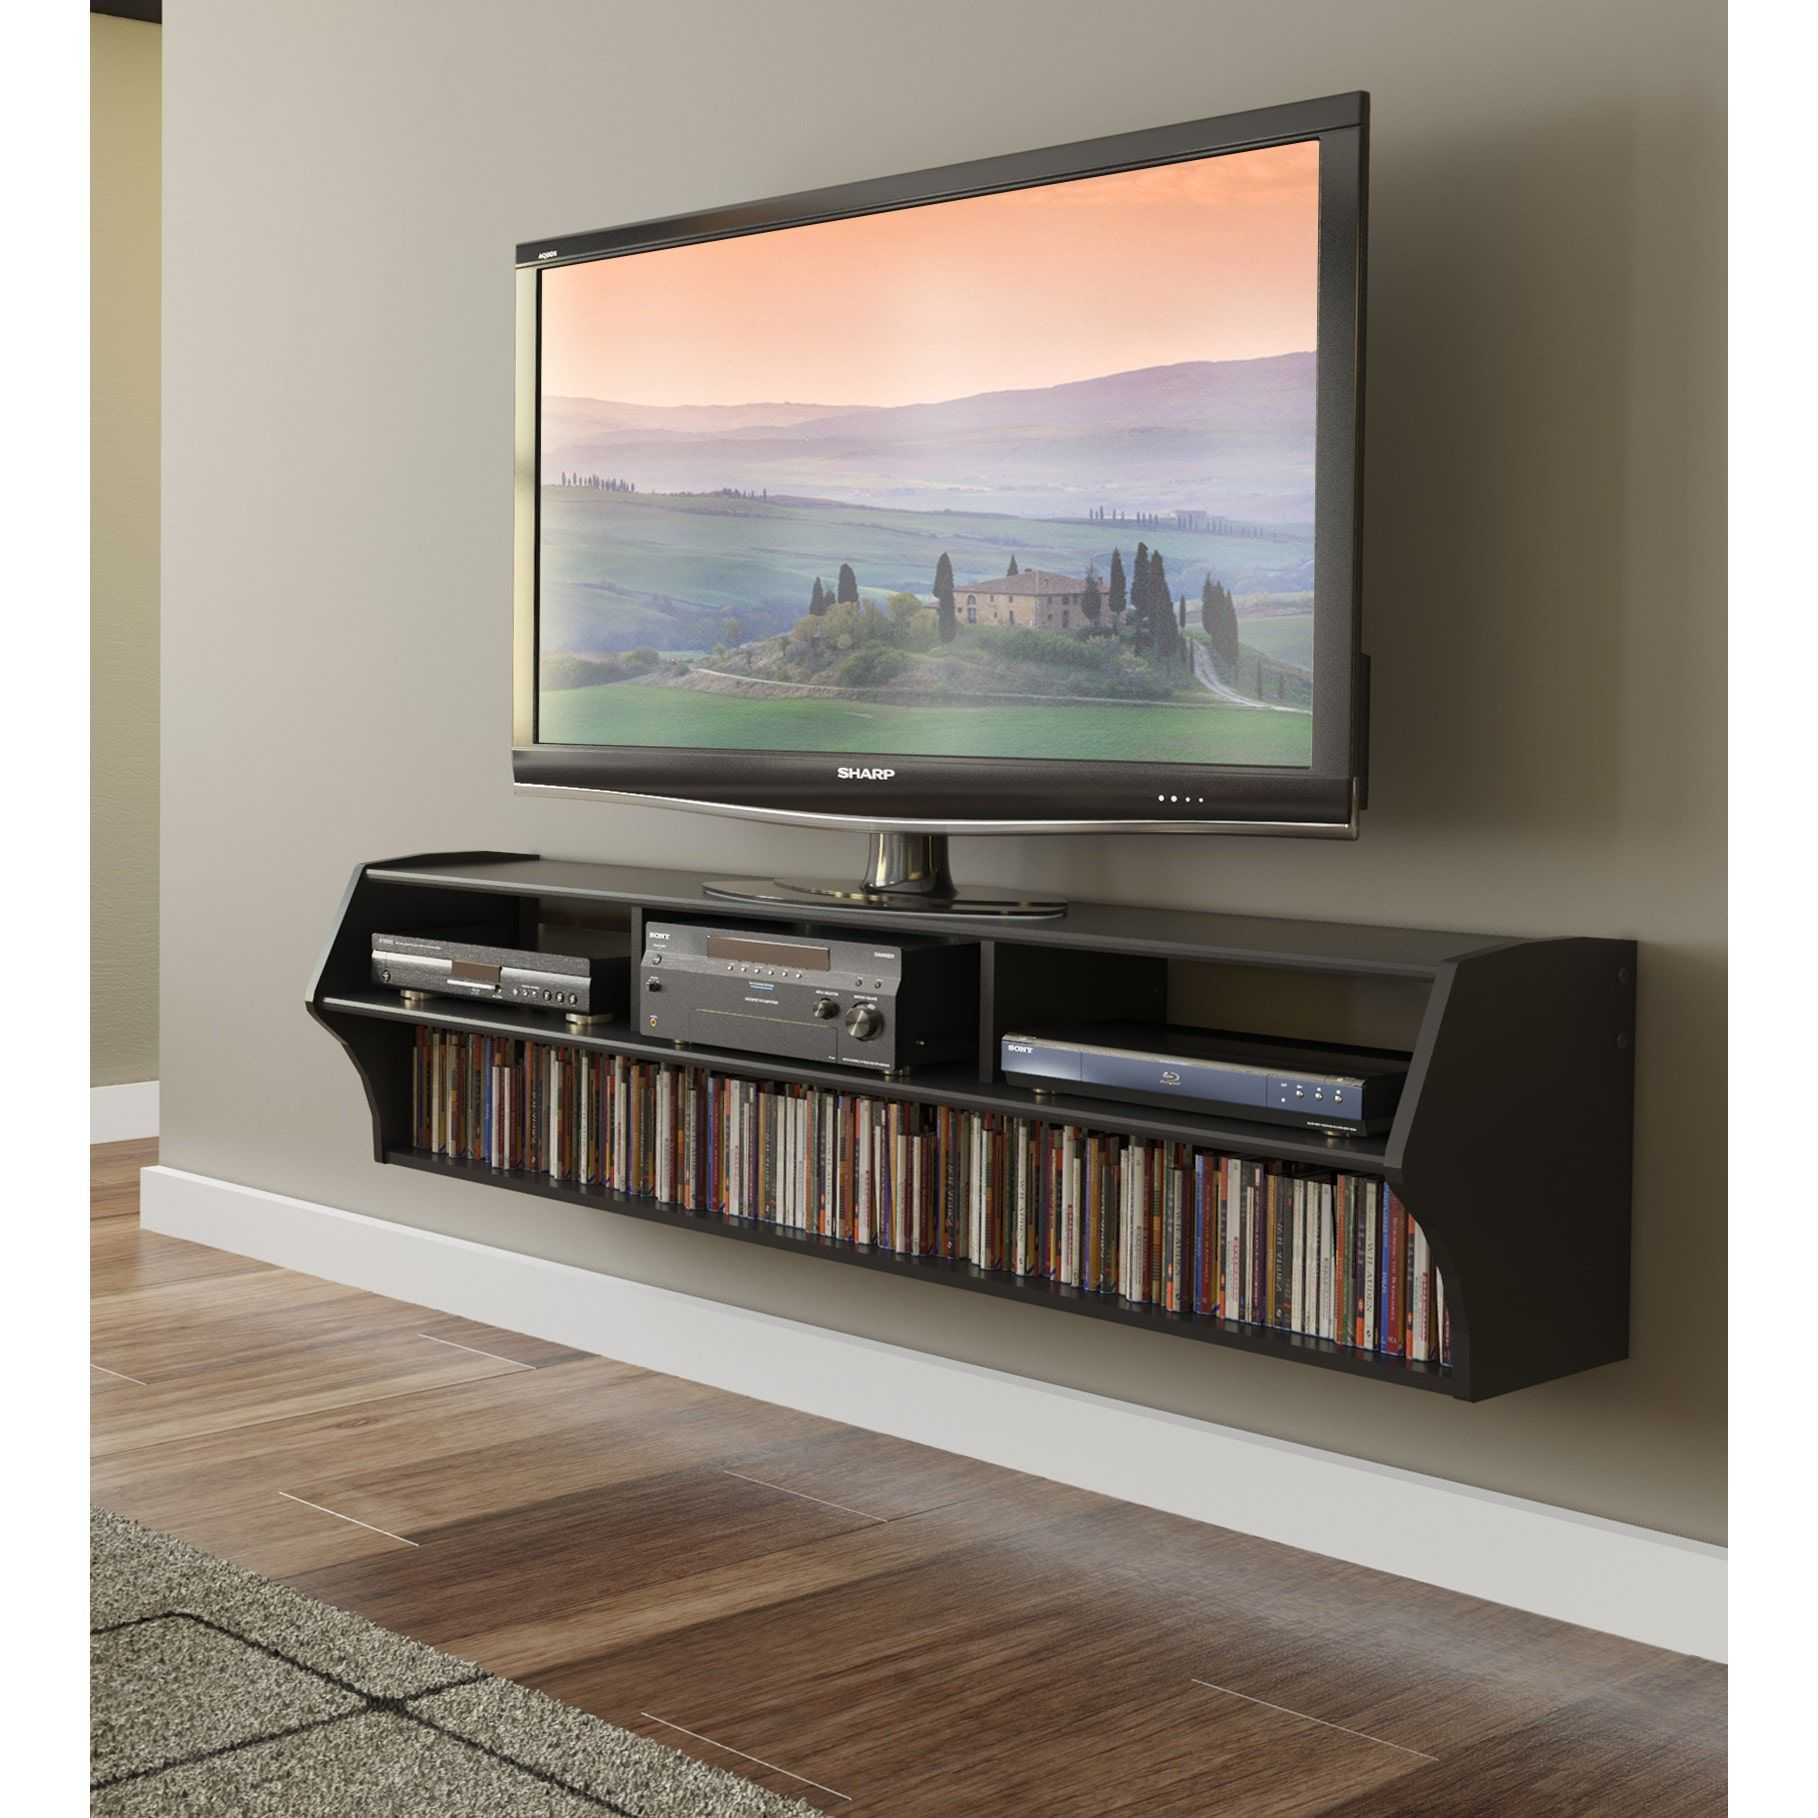 Meuble Tv Broadway - Broadway Altus Plus Black 58 Inch Floating Tv Stand Floating Tv [mjhdah]http://lowcarbenergy.com/wp-content/uploads/2017/10/in-tvtands-blacktand-withwivel-mount-for-mount55torage55-electric-fireplace55-black55.jpg